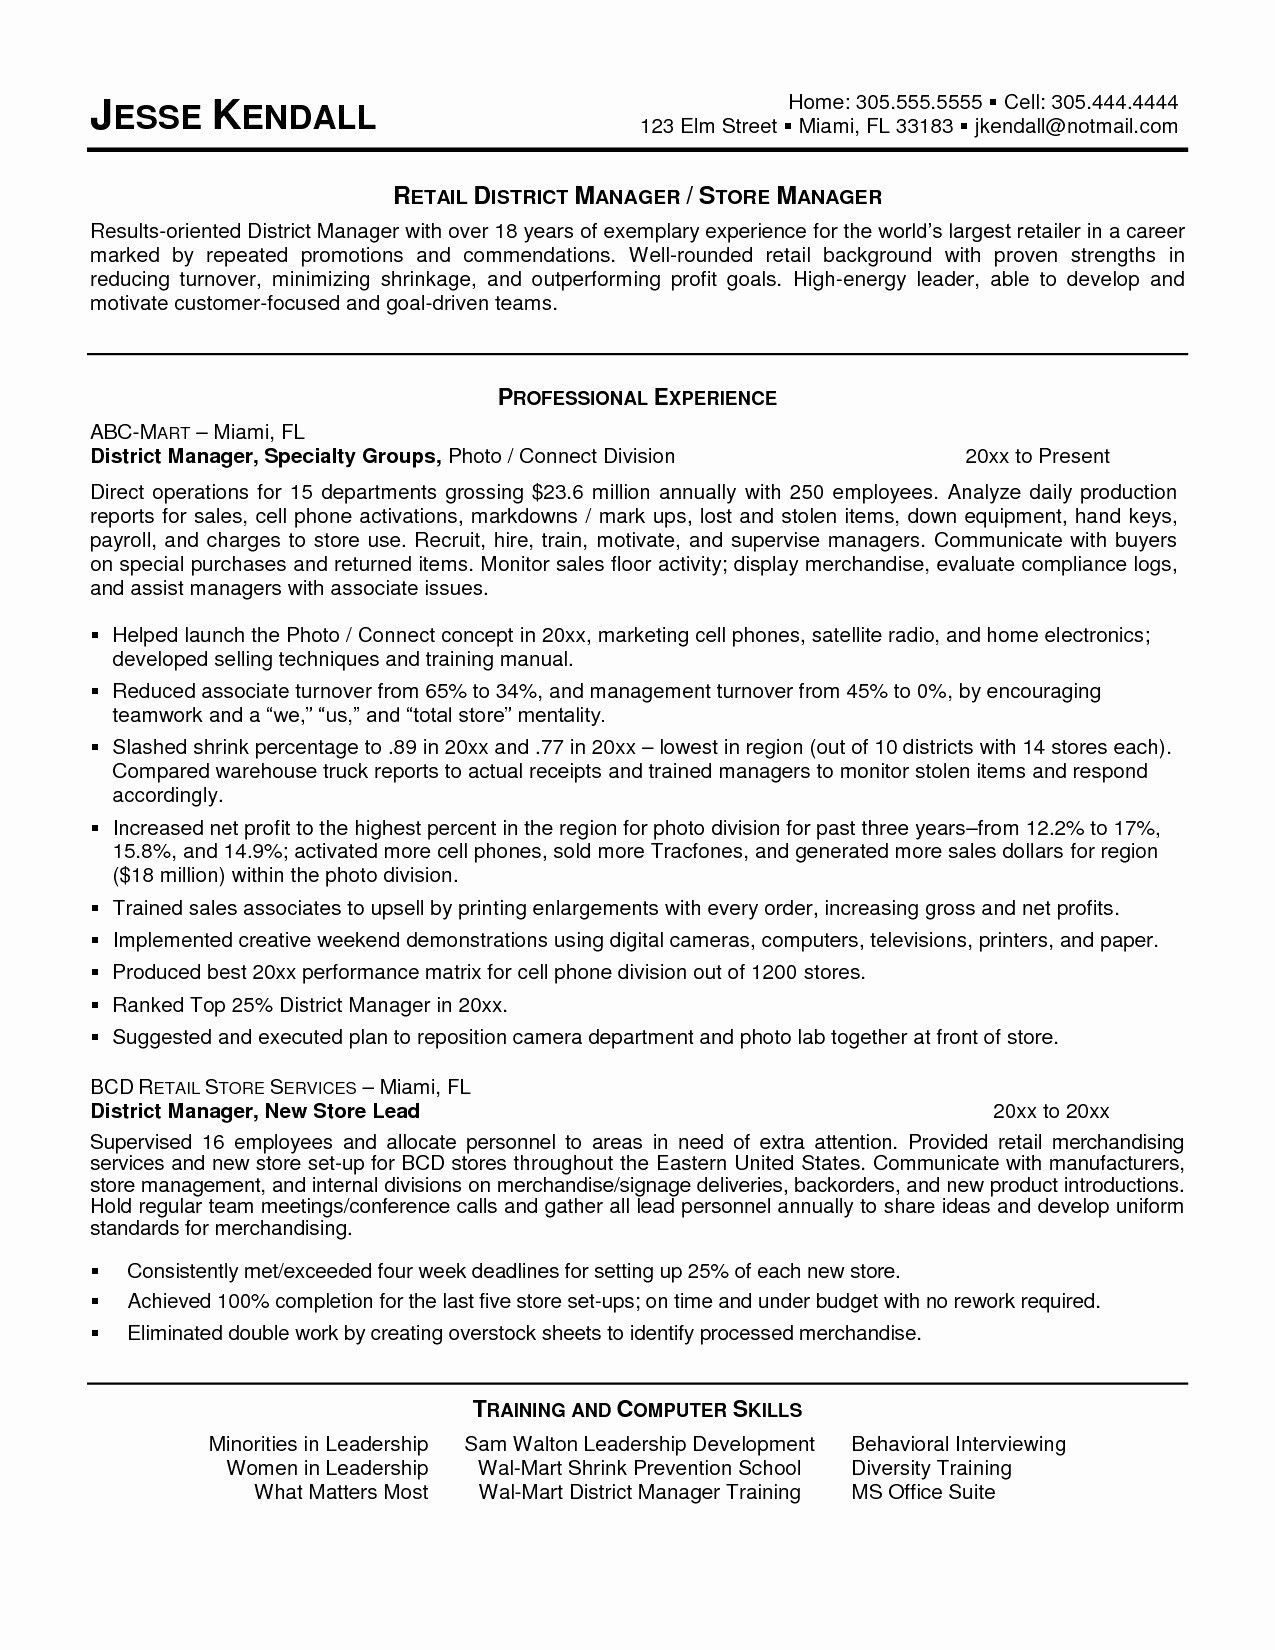 Lifeguard Responsibilities for Resume - 15 Resume and Cv